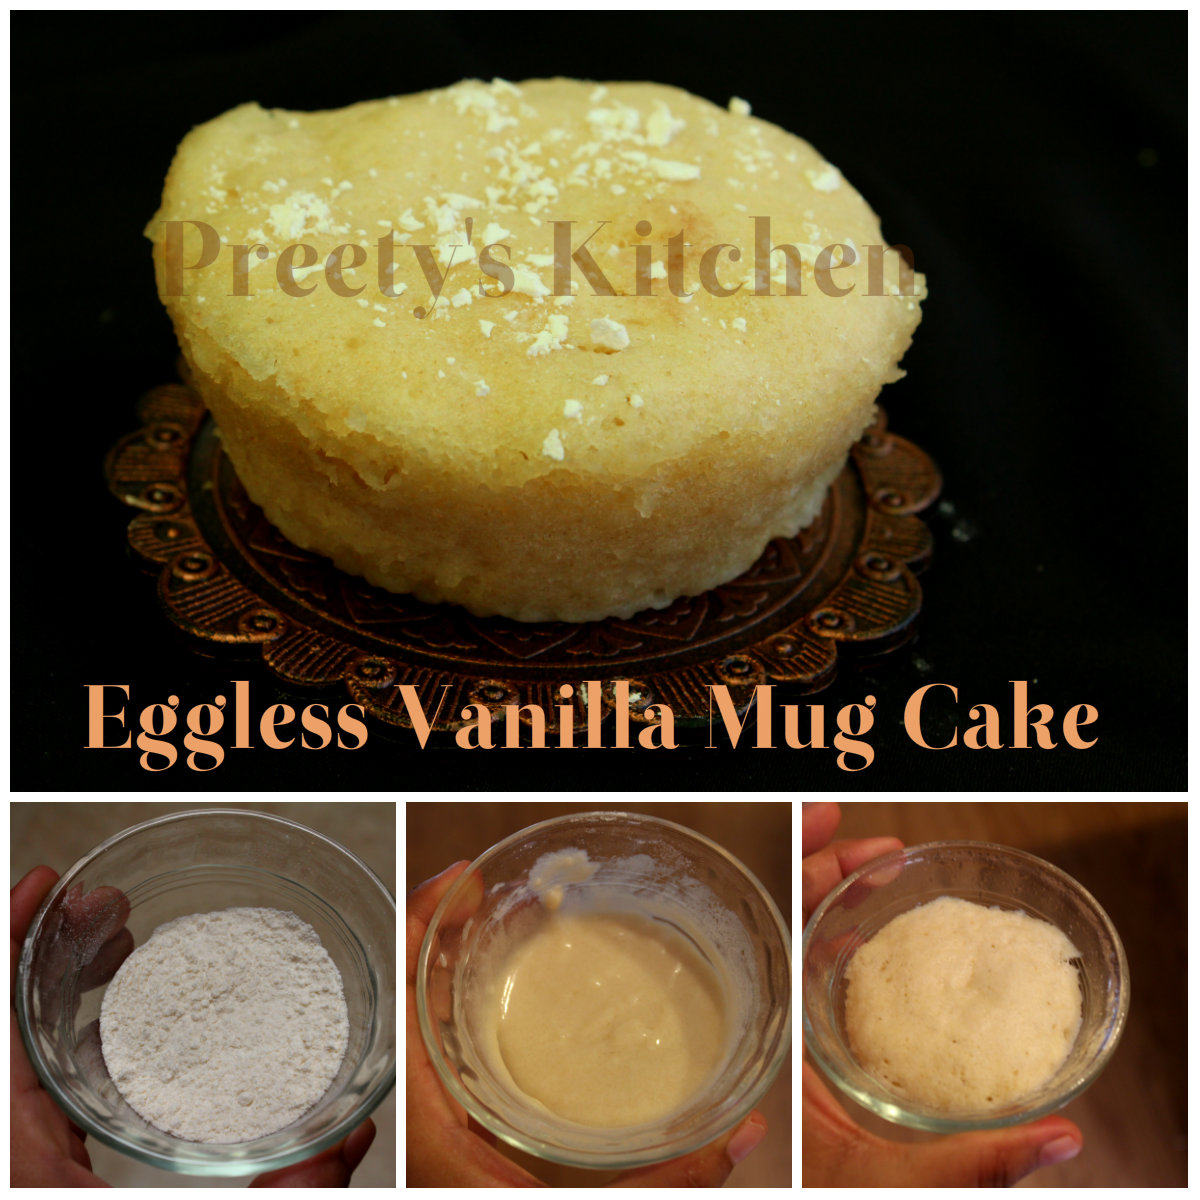 Aug 19,  · This keto vanilla mug cake recipe is the perfect solution for those times when you want cake, but not a whole cake. This keto vanilla mug cake recipe is the perfect solution for those times when you want cake, but not a whole cake. Servings: 1.